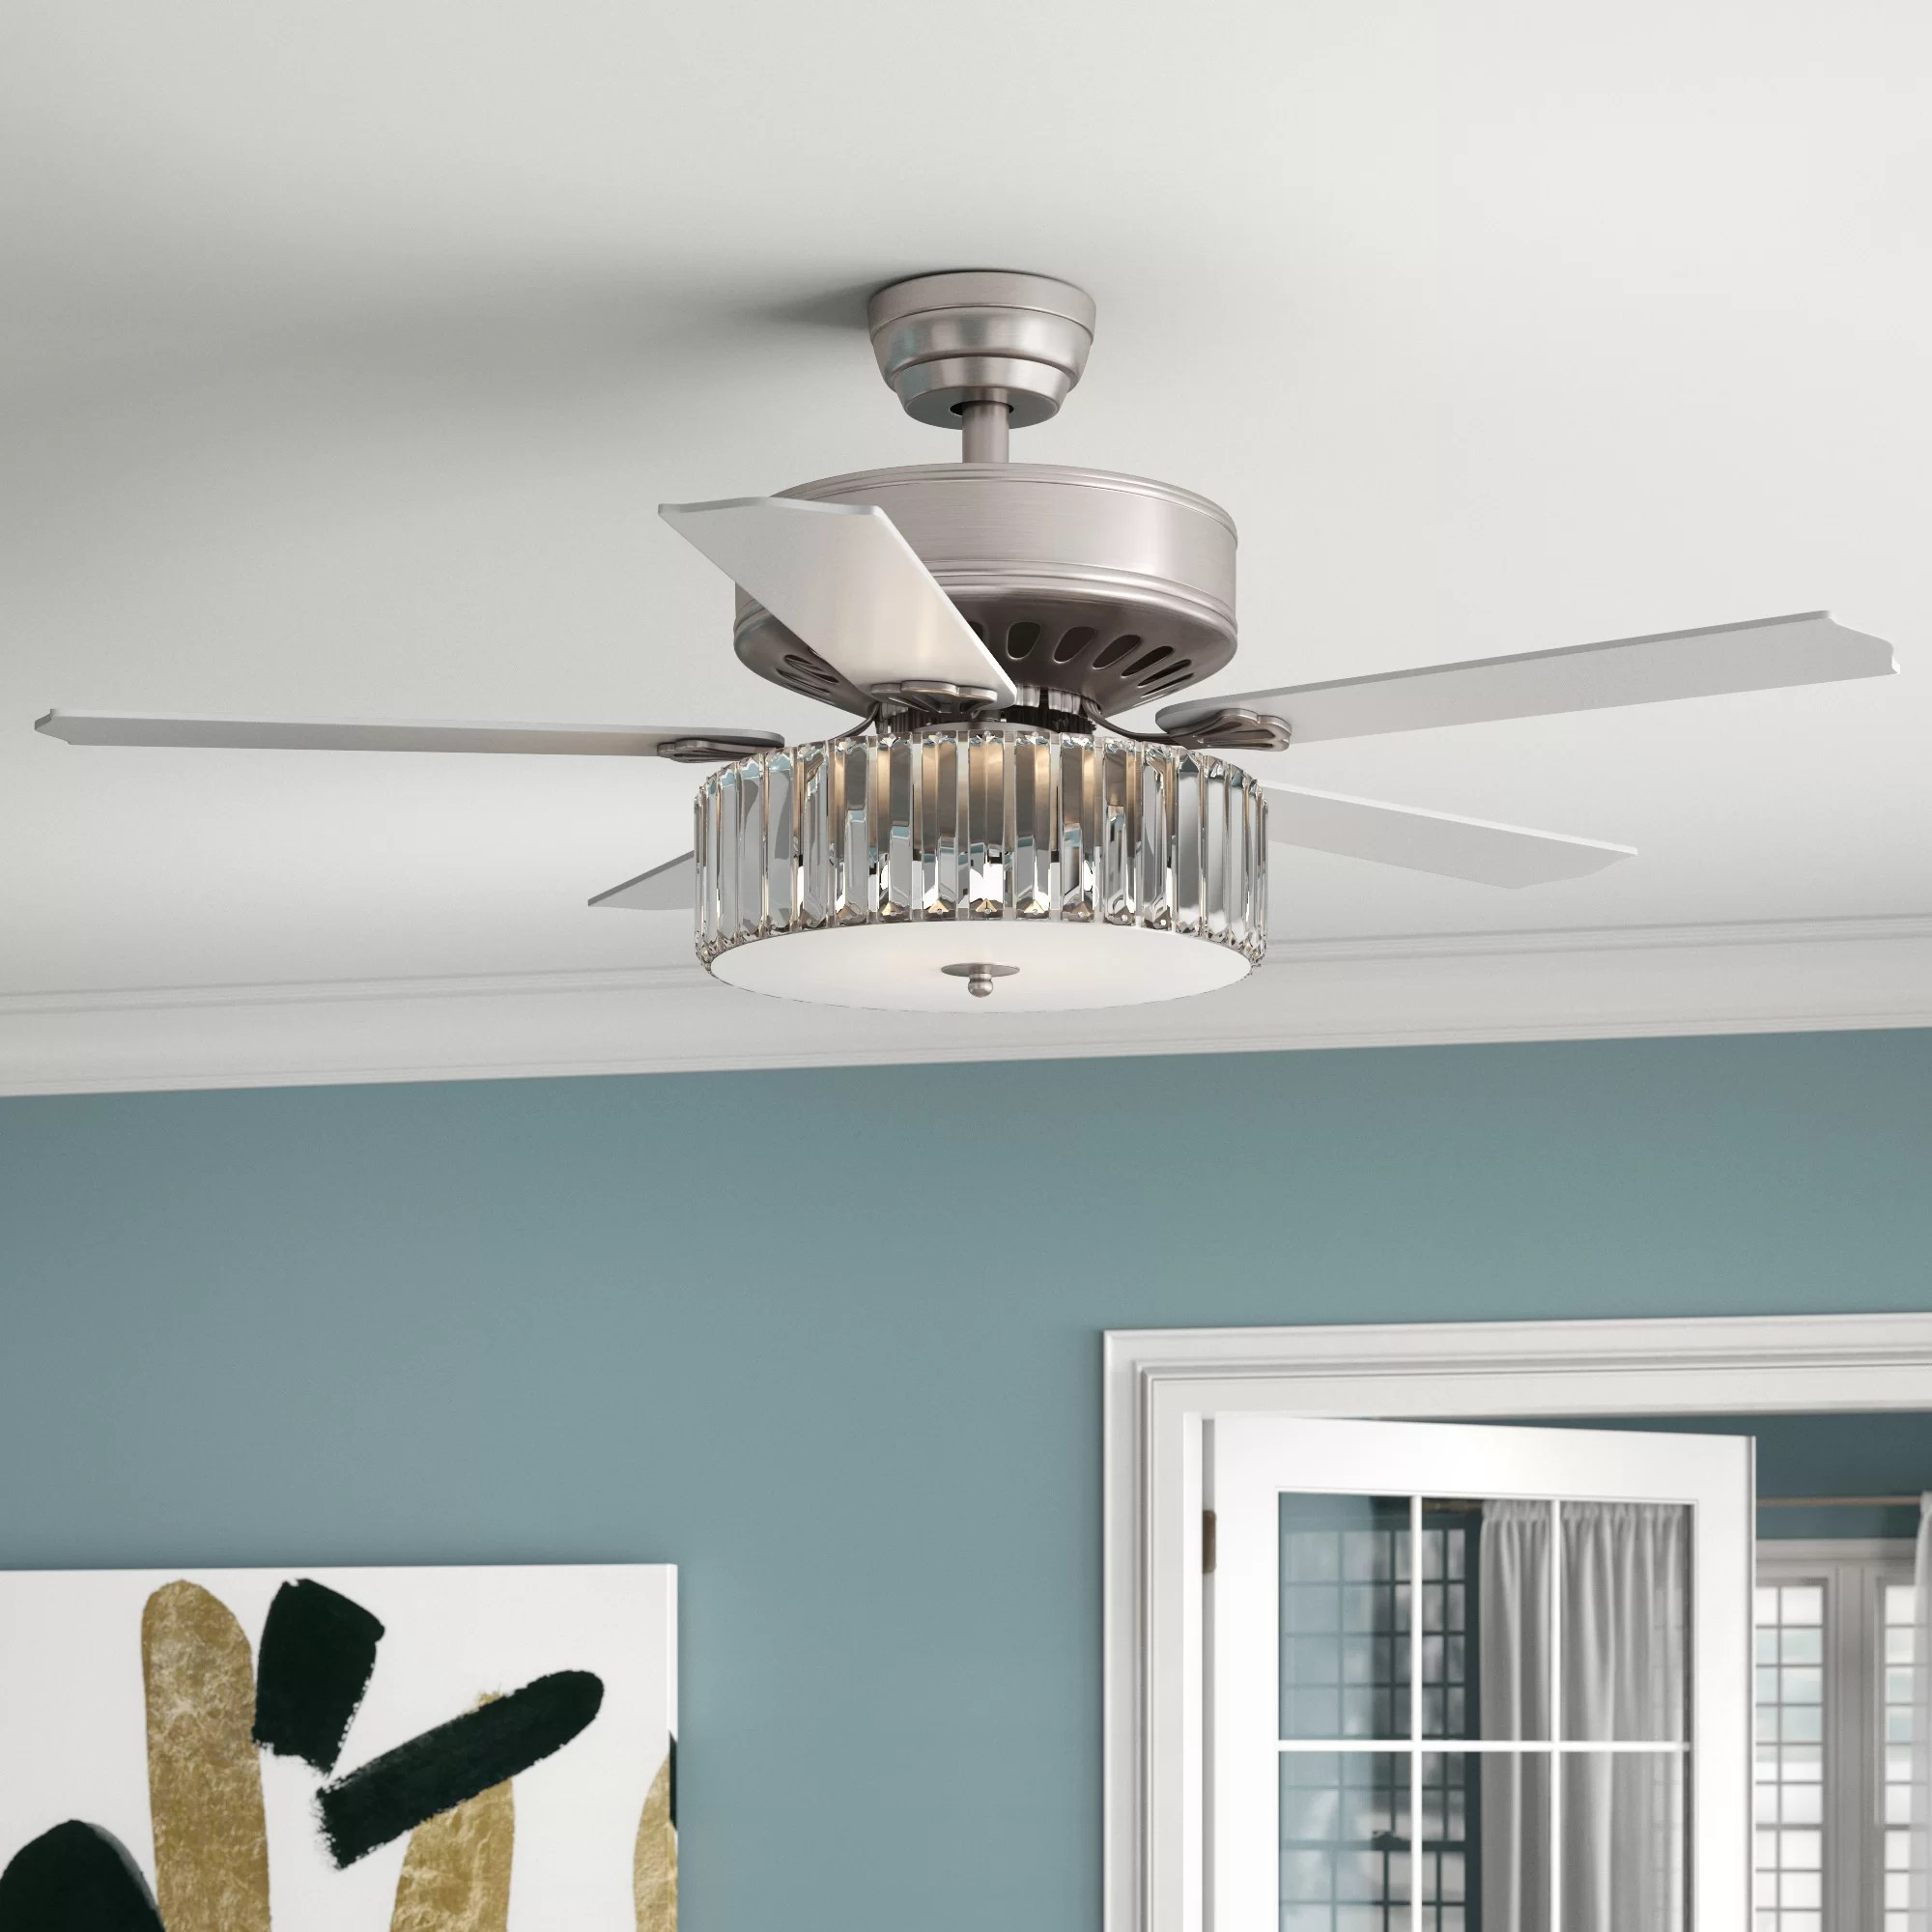 Unusual Ceiling Fans For Sale 52